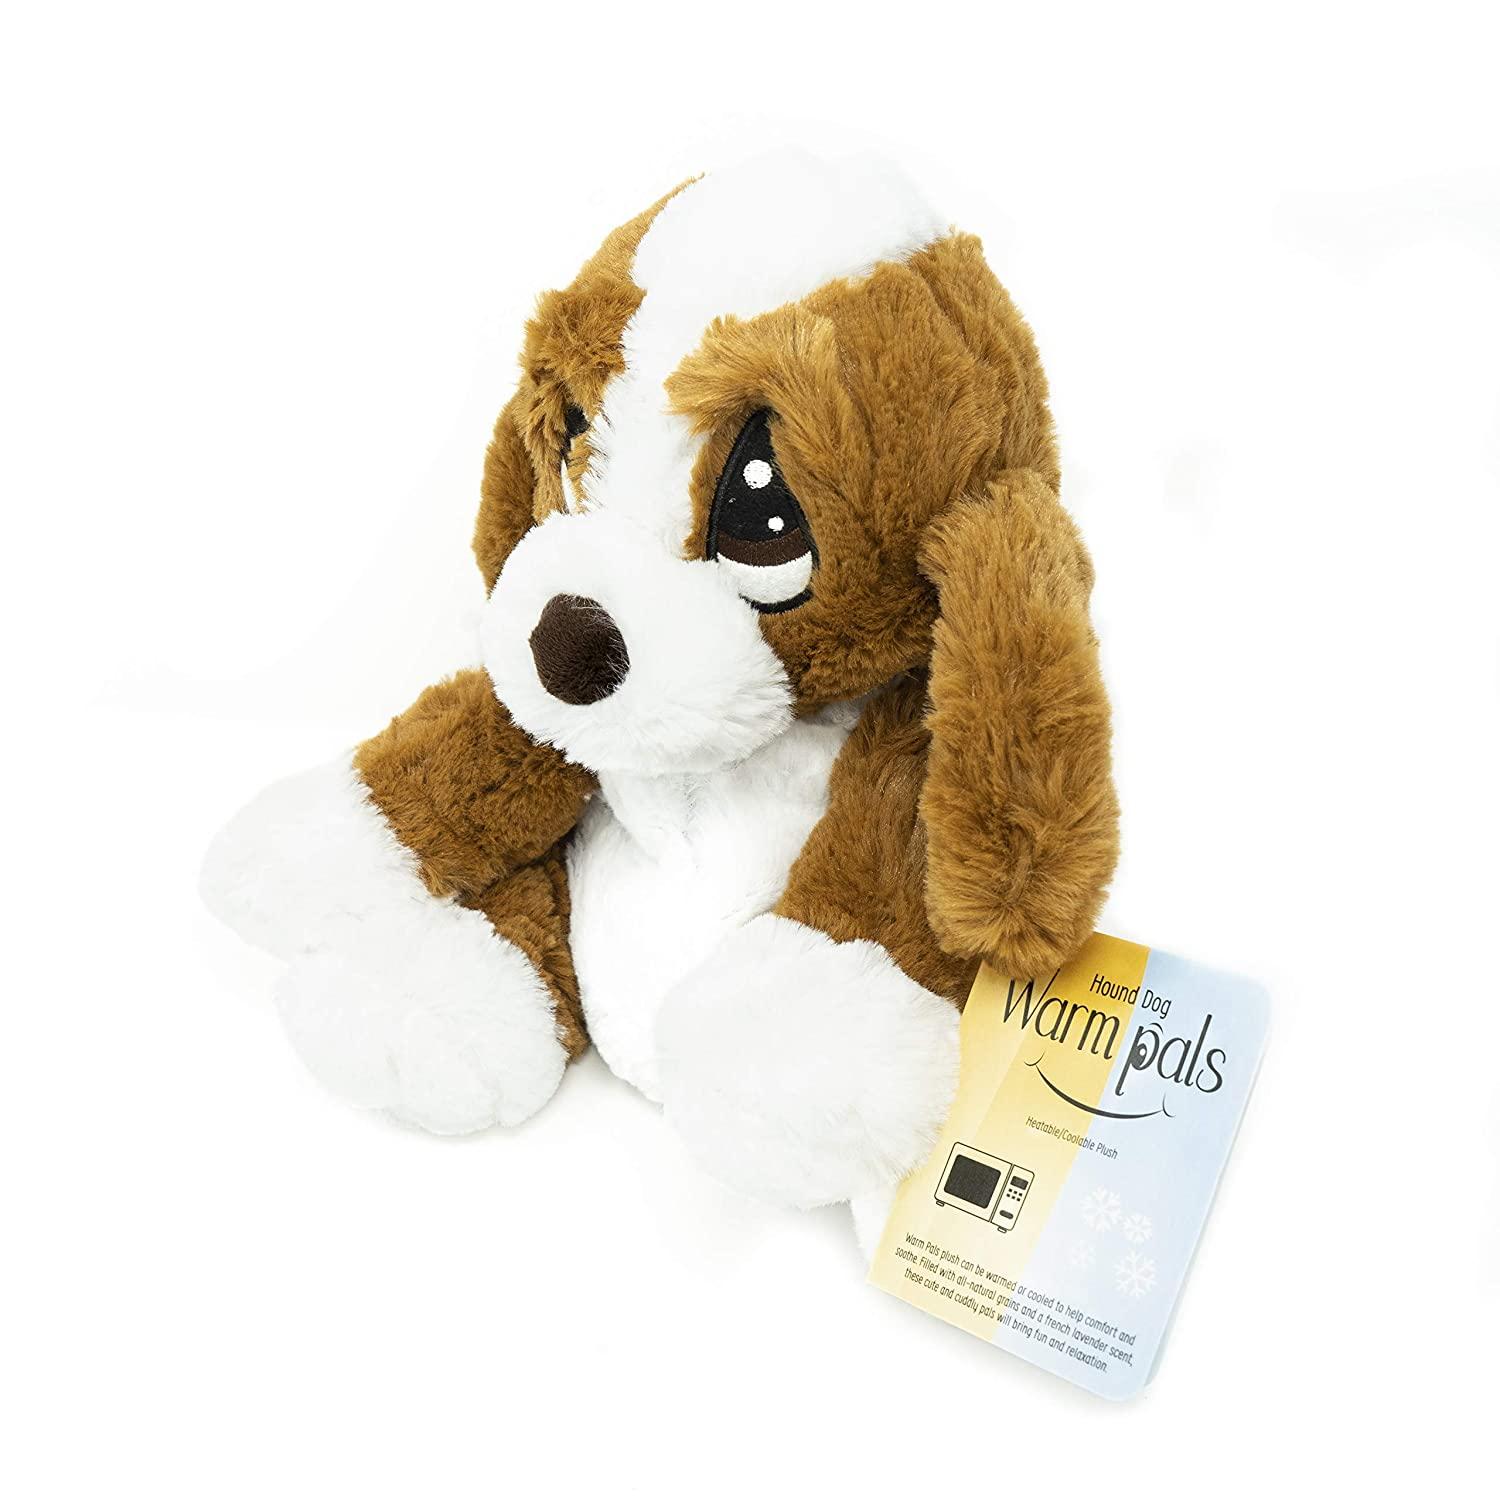 1i4 Group Warm Pals Microwavable Lavender Scented Plush Toy Stuffed Animal - Hound Dog